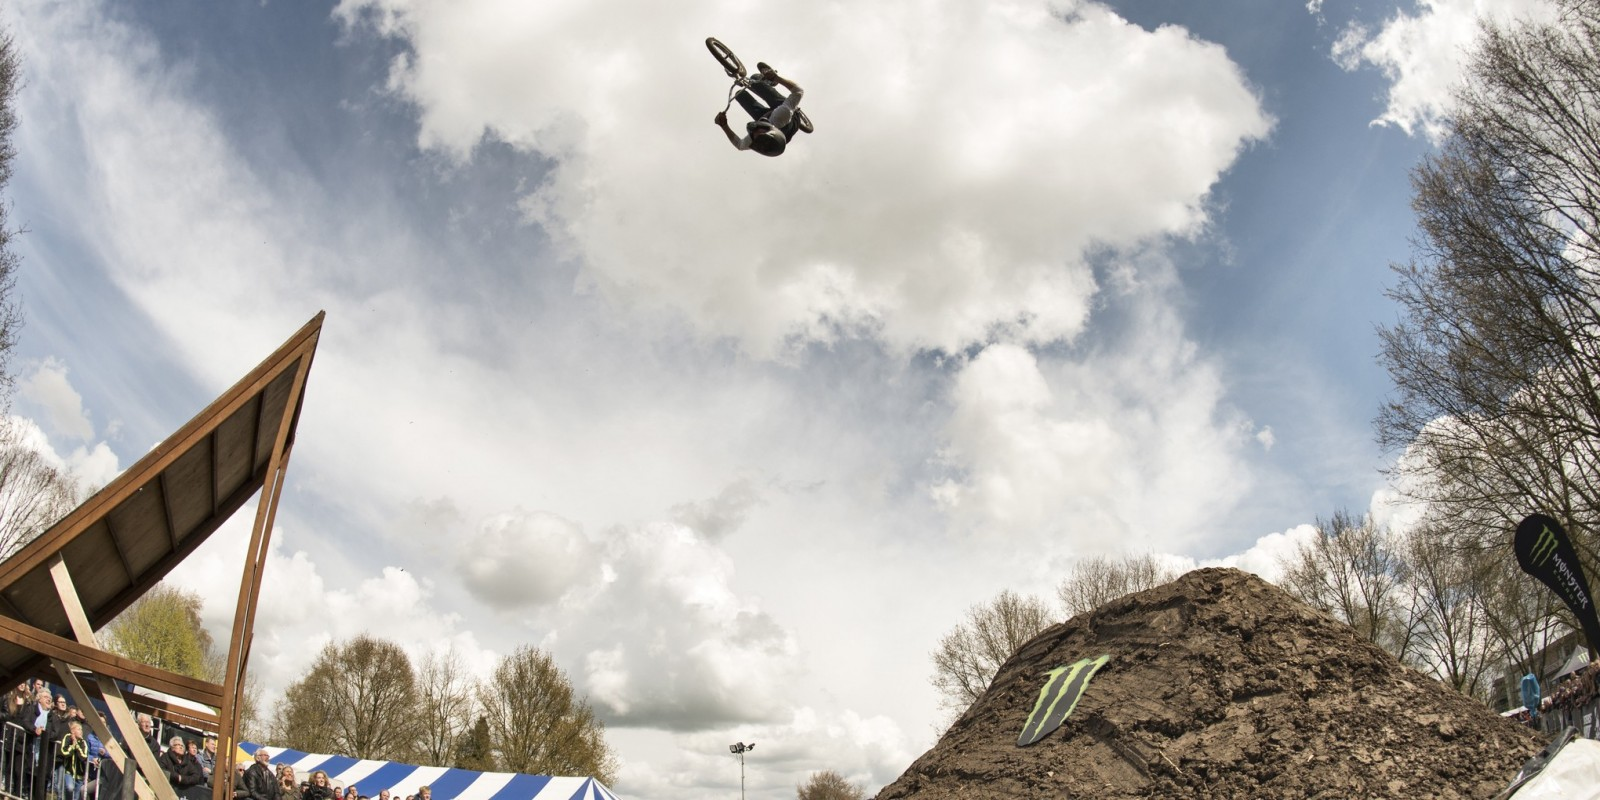 Menno Rouwenhorst with a backflip on home turf during Kingsday Extreme in Wapenveld.